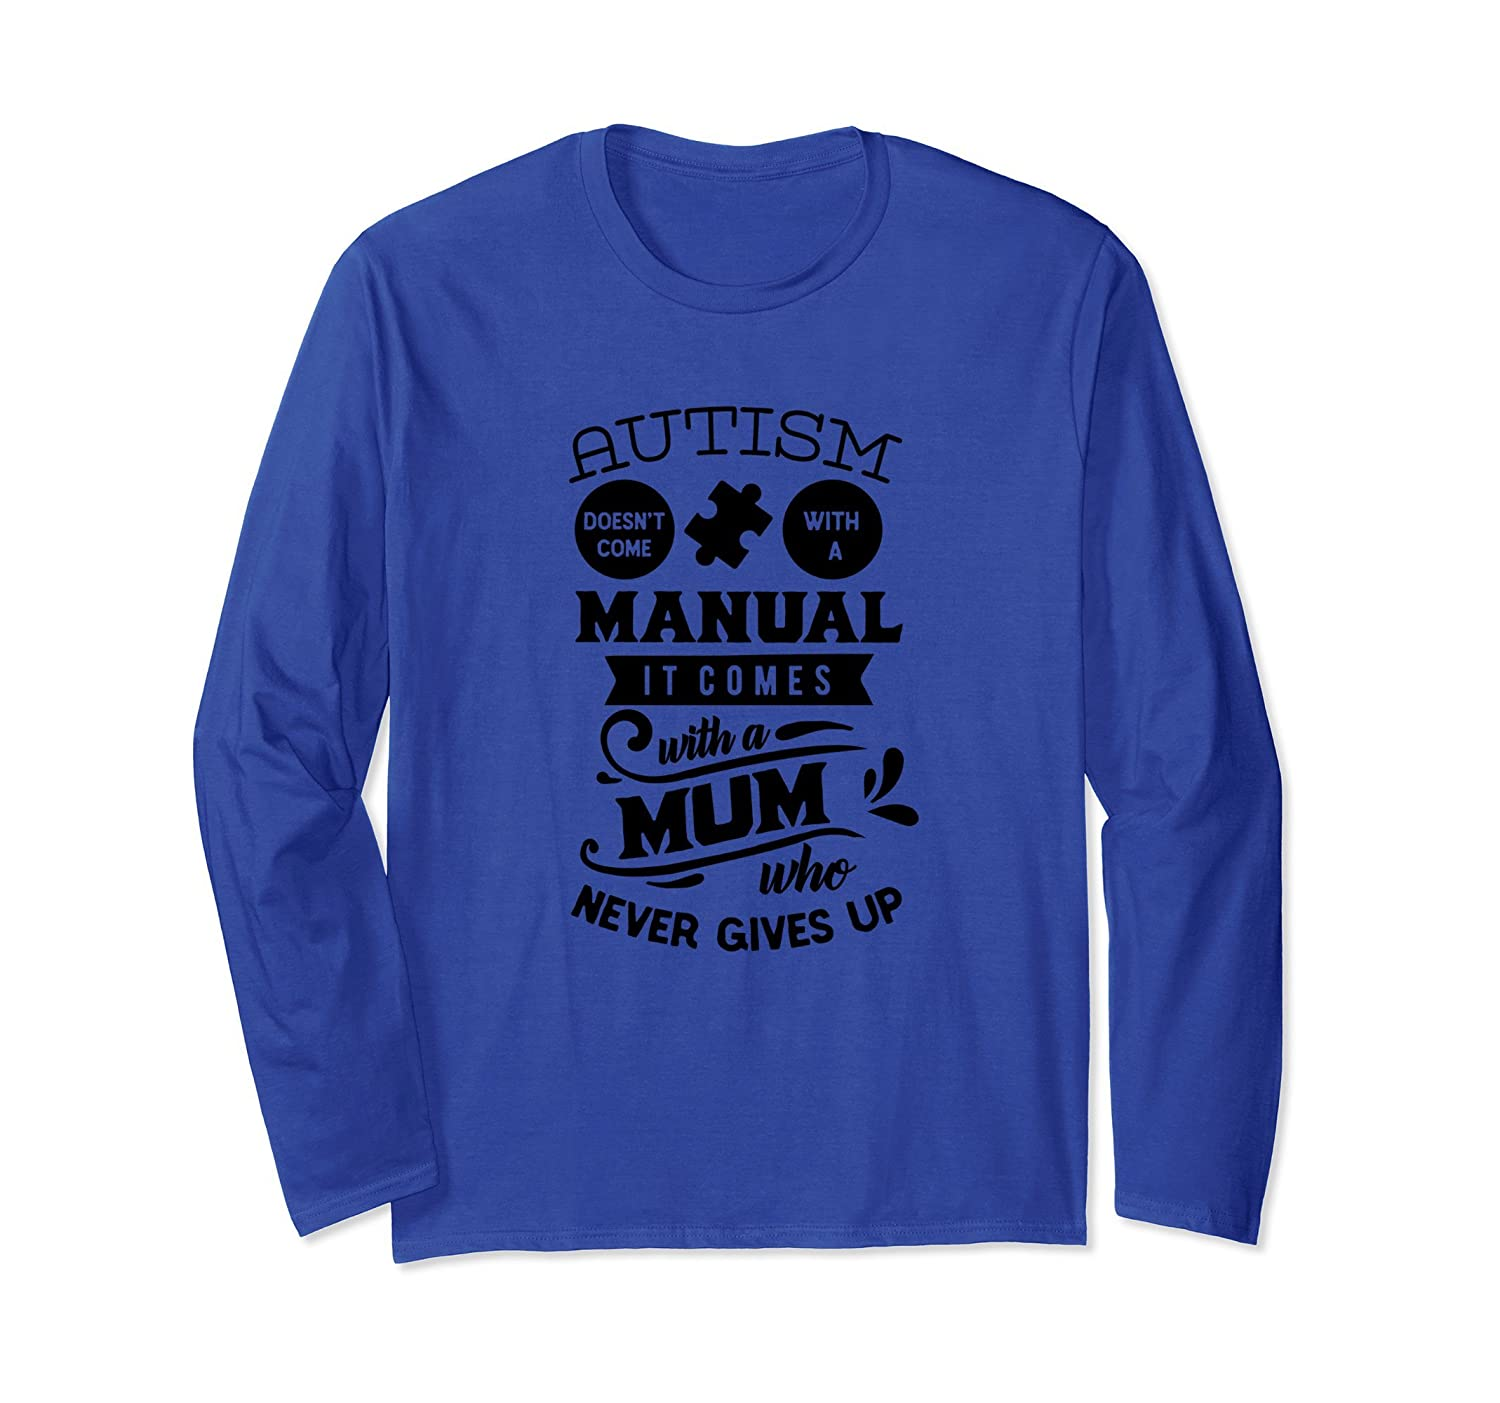 Autism Comes with a Mum Manual Long Sleeve Shirt-ah my shirt one gift